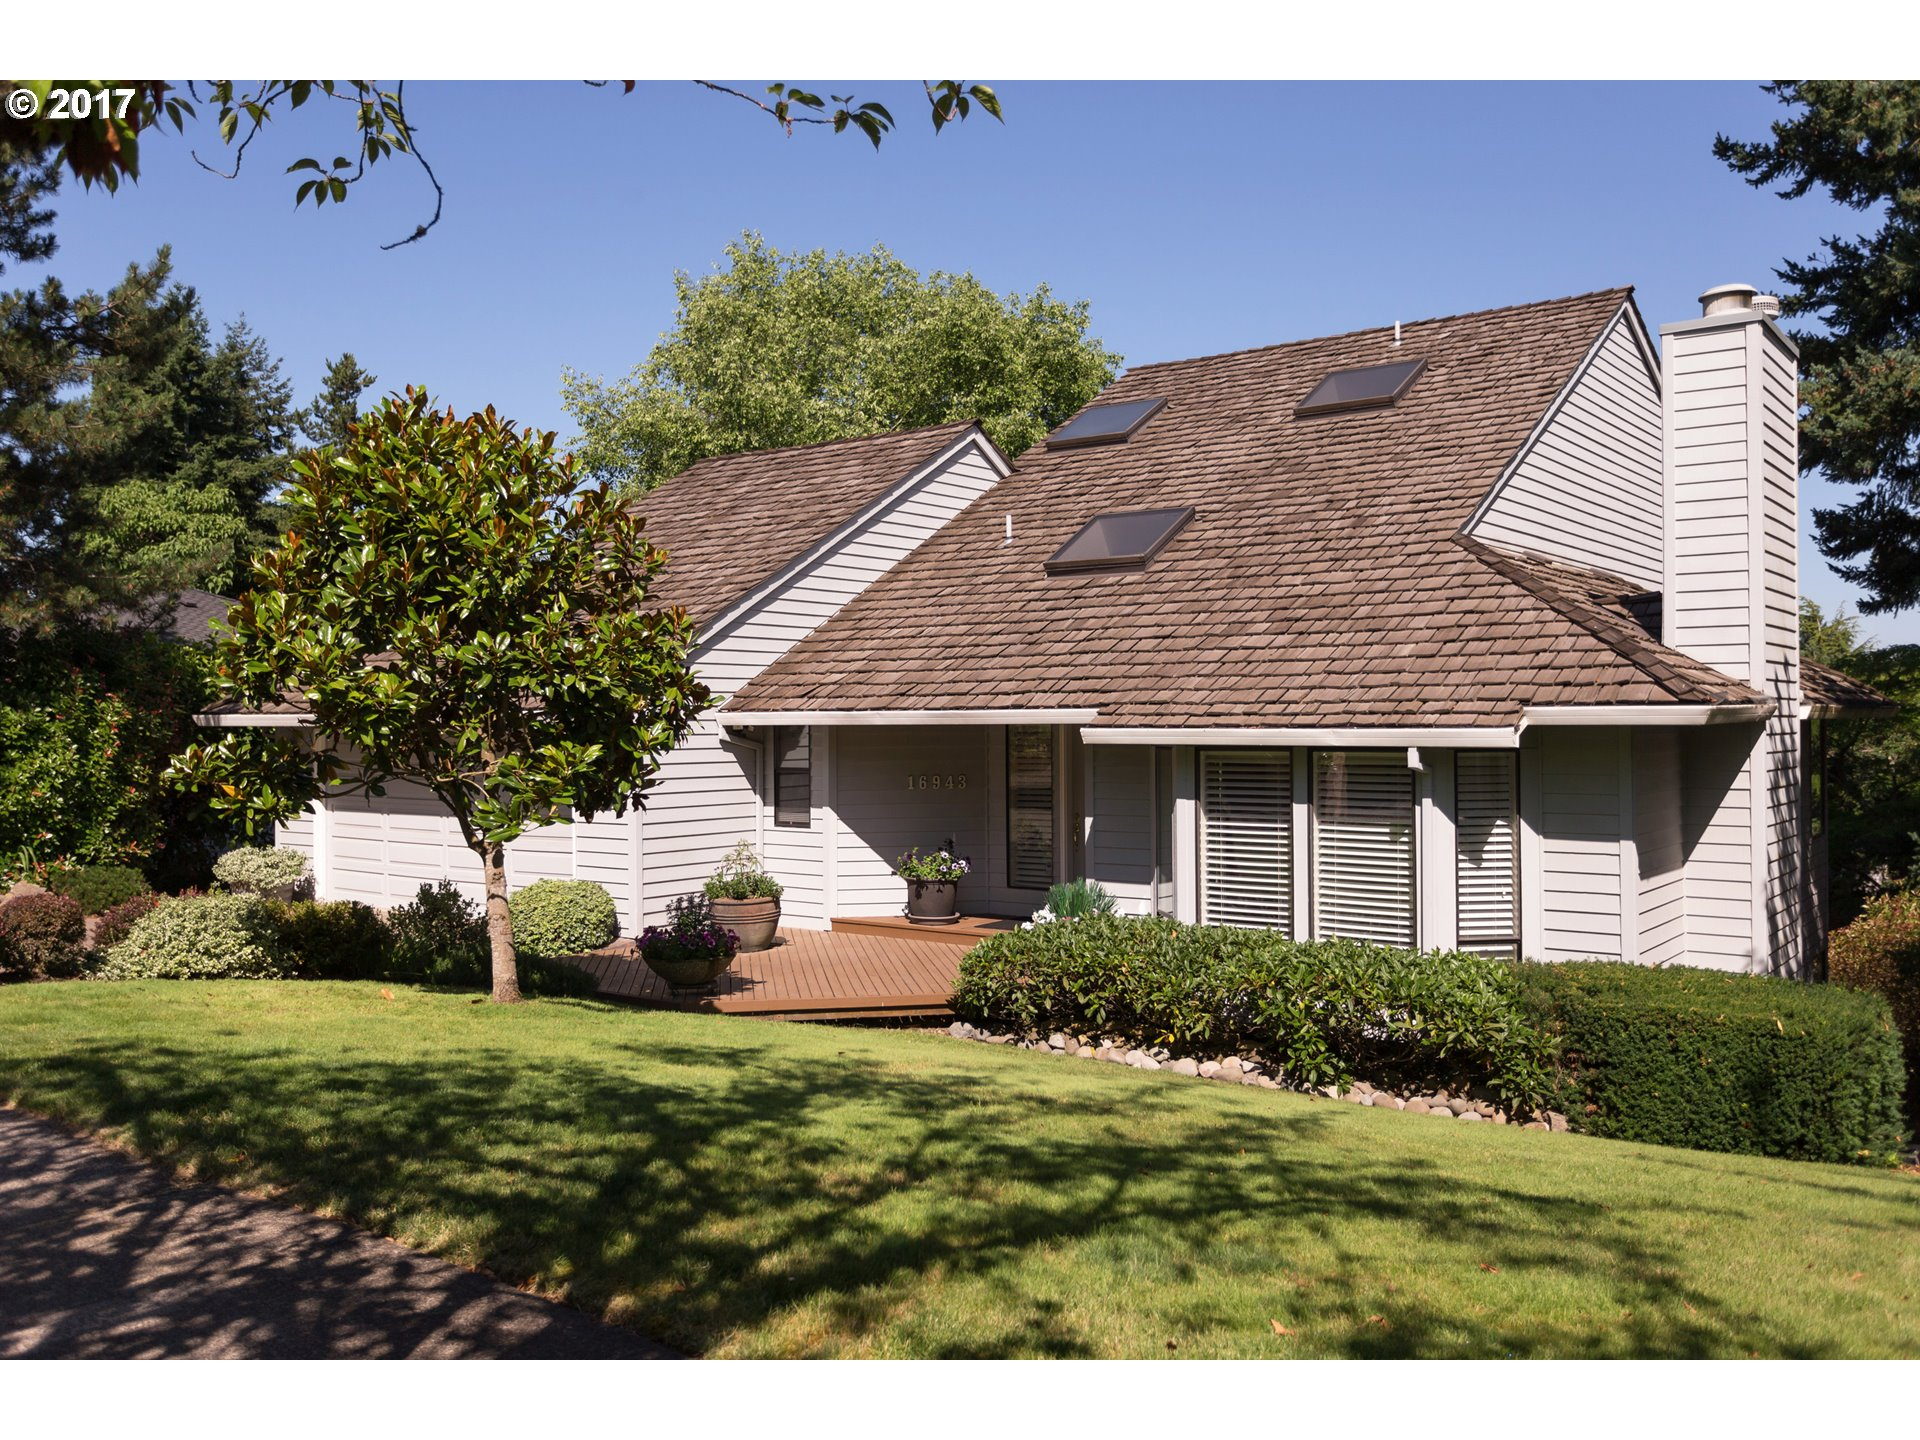 16943 CHERRY CREST DR, Lake Oswego, OR 97034